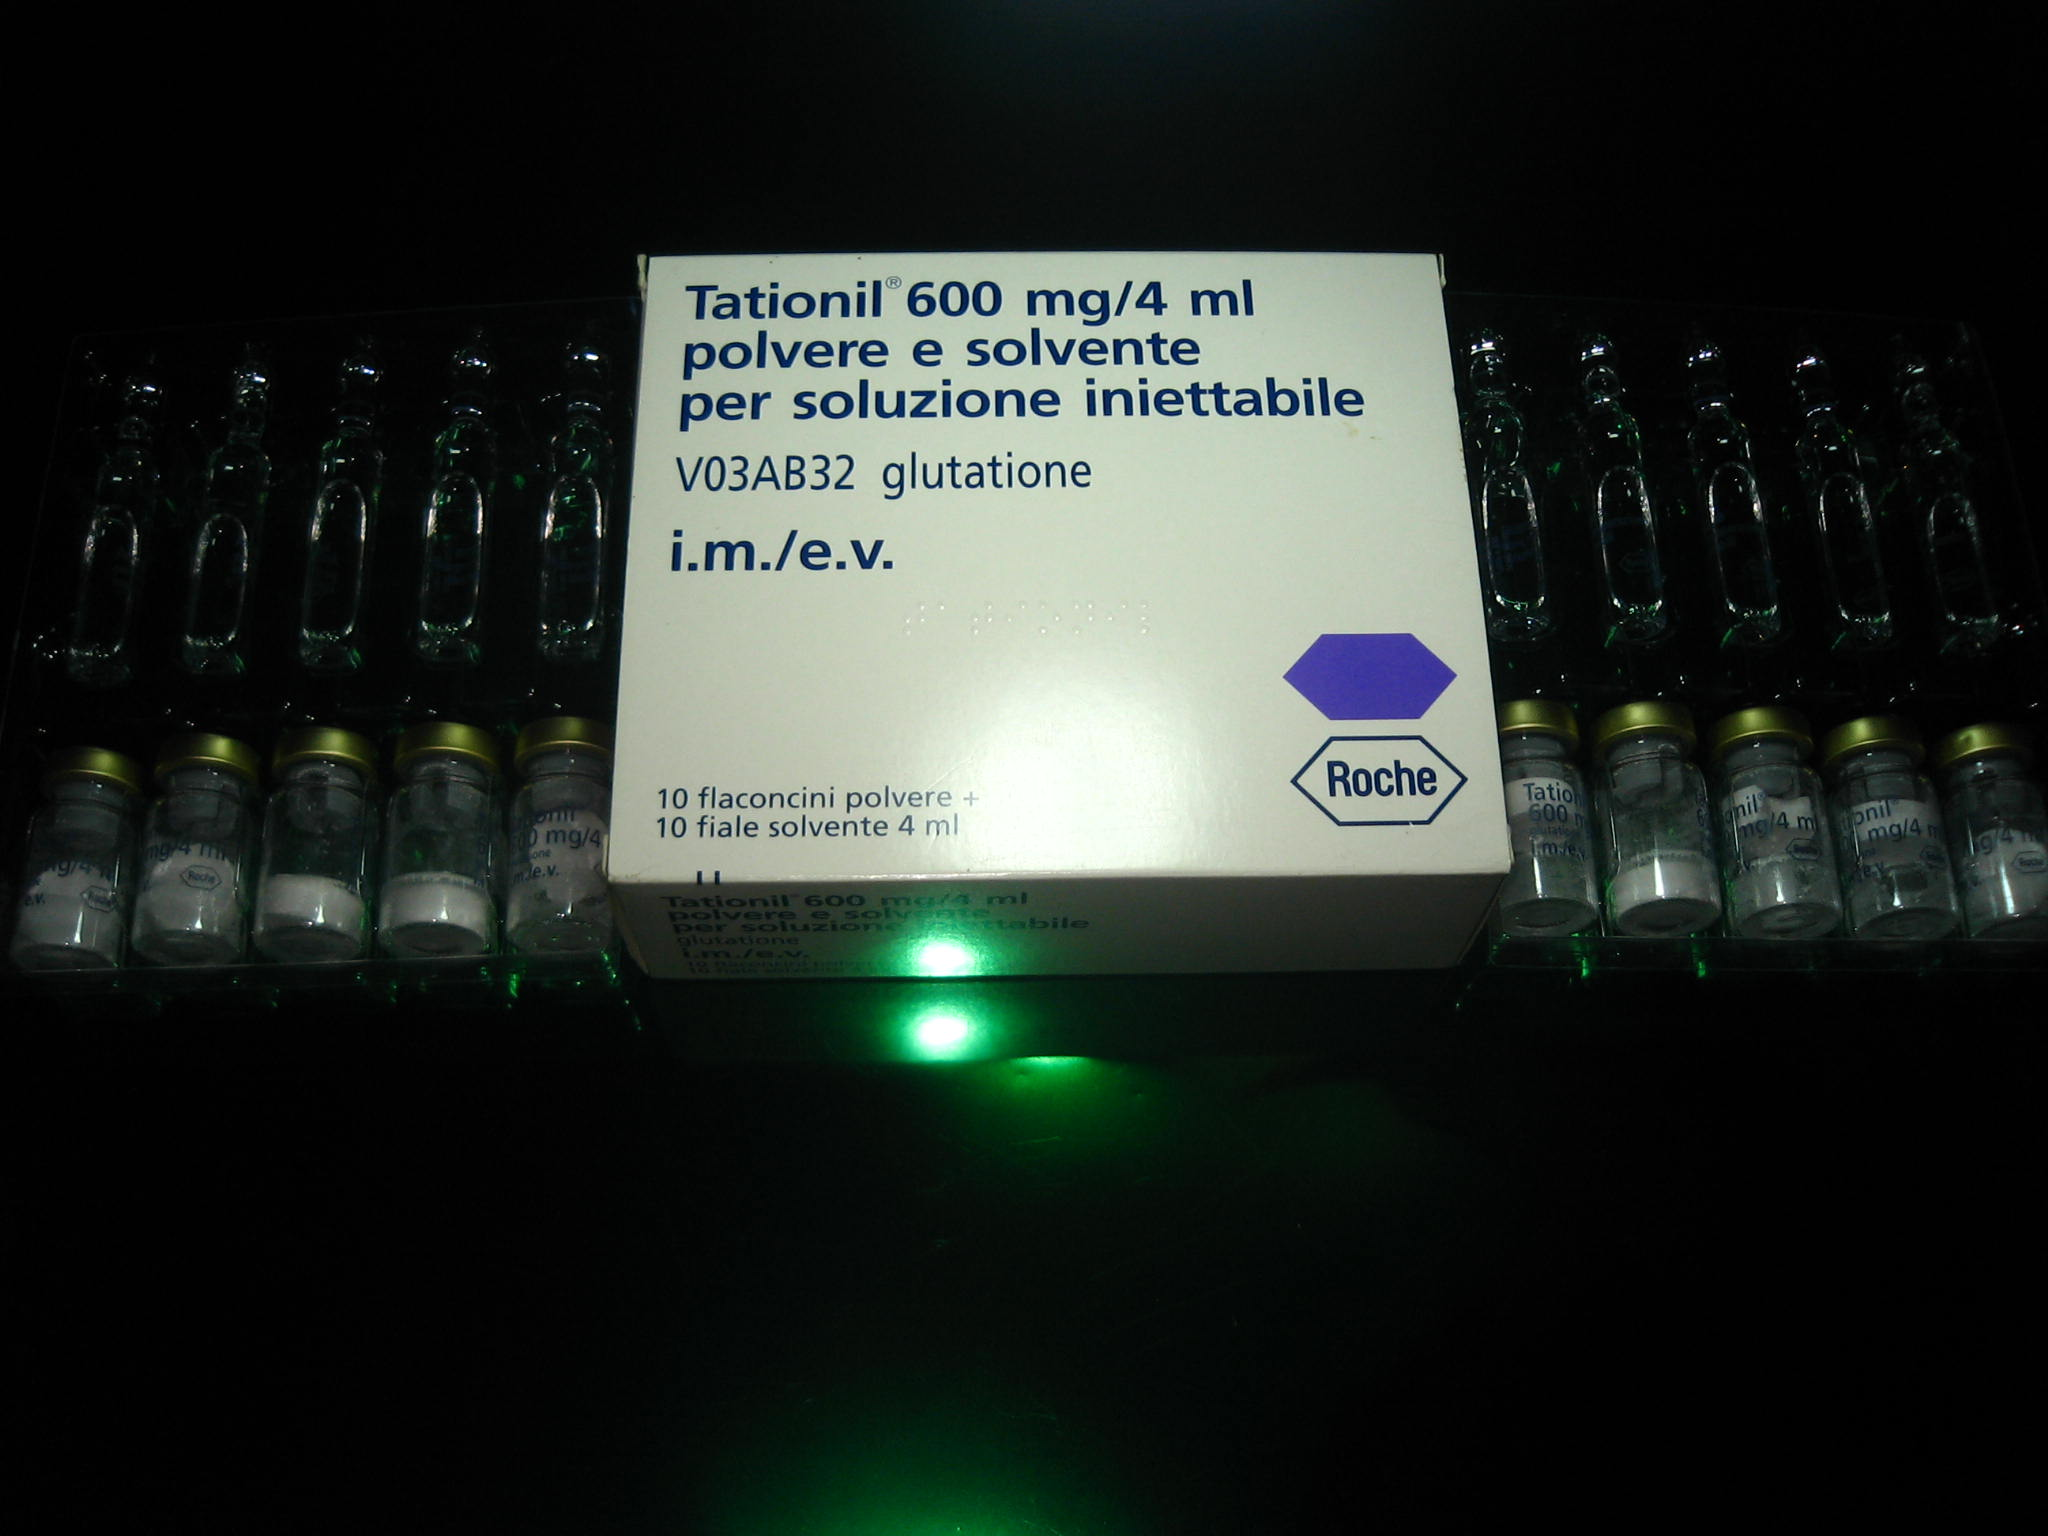 Tationil Injectible Glutathione